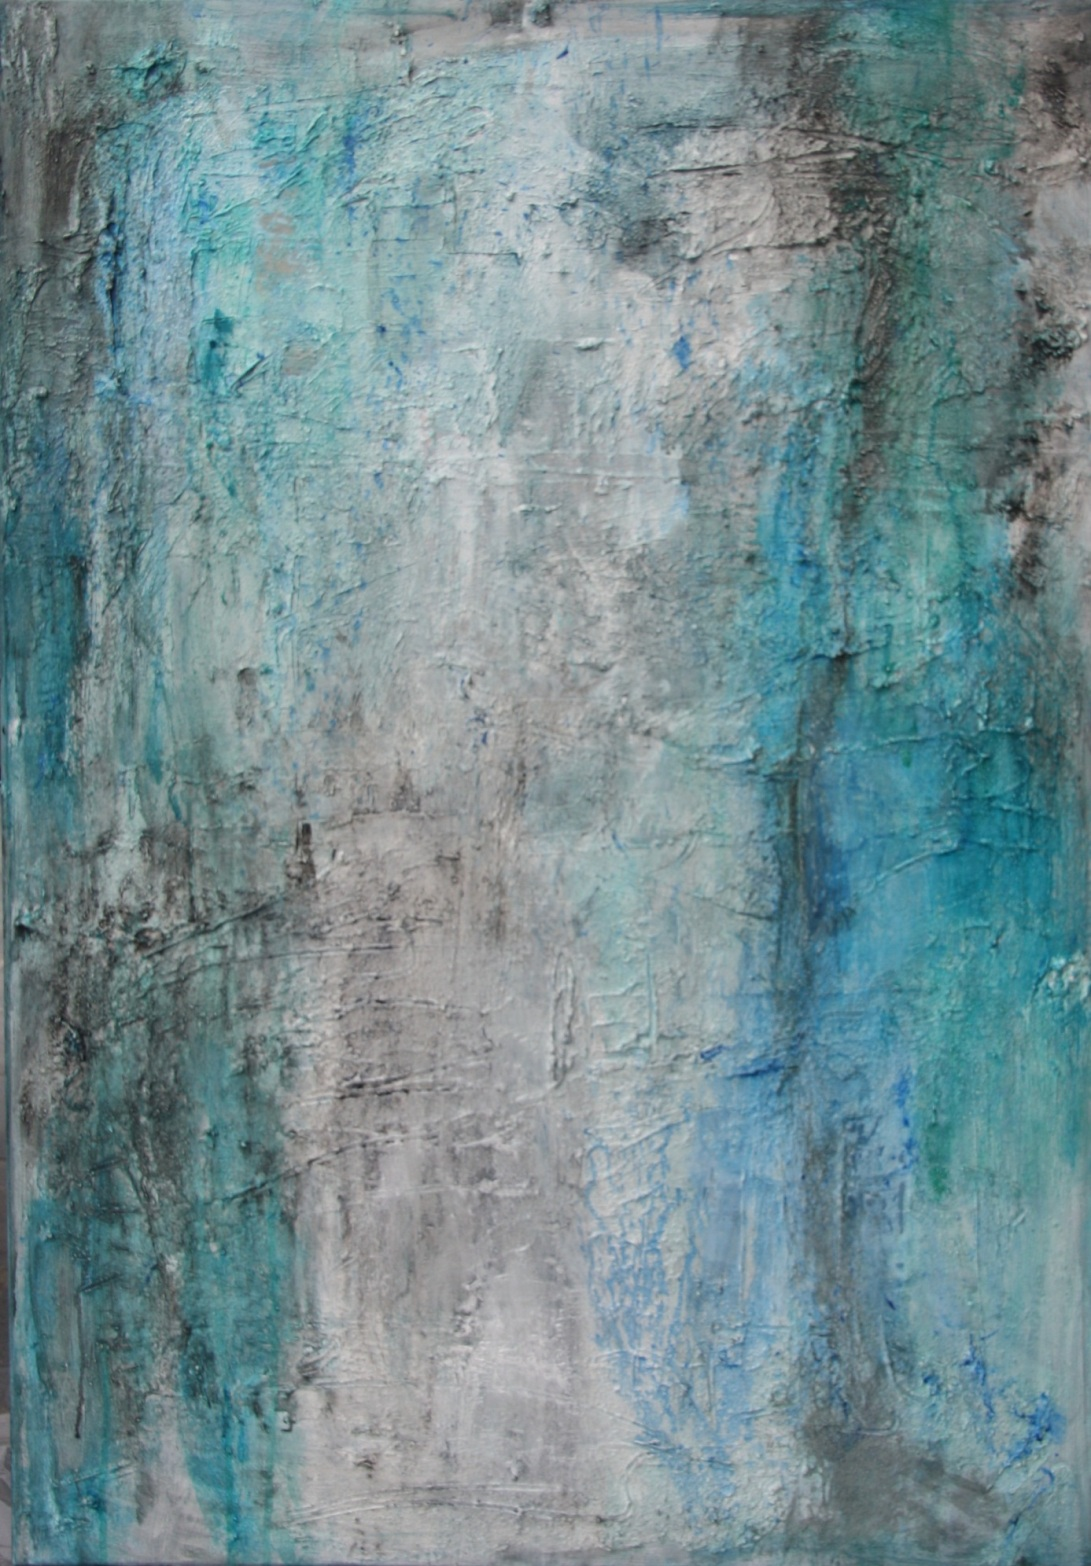 Textured abstract painting in different shades of blue